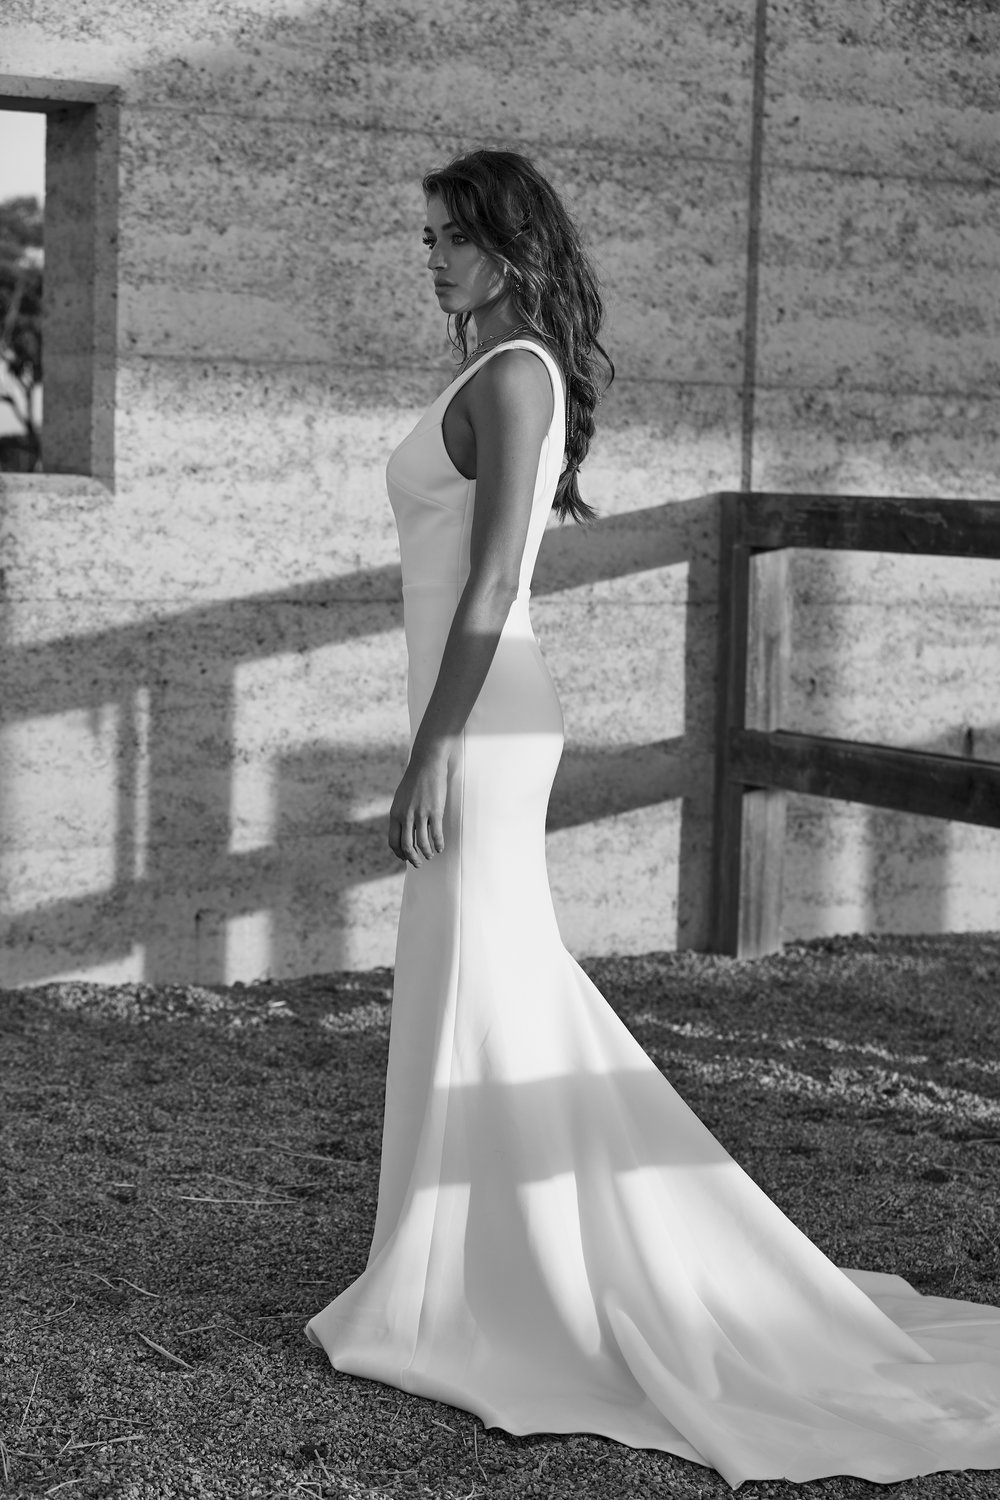 chosen-new-reign-clara-wedding-dress-side-bw.jpg